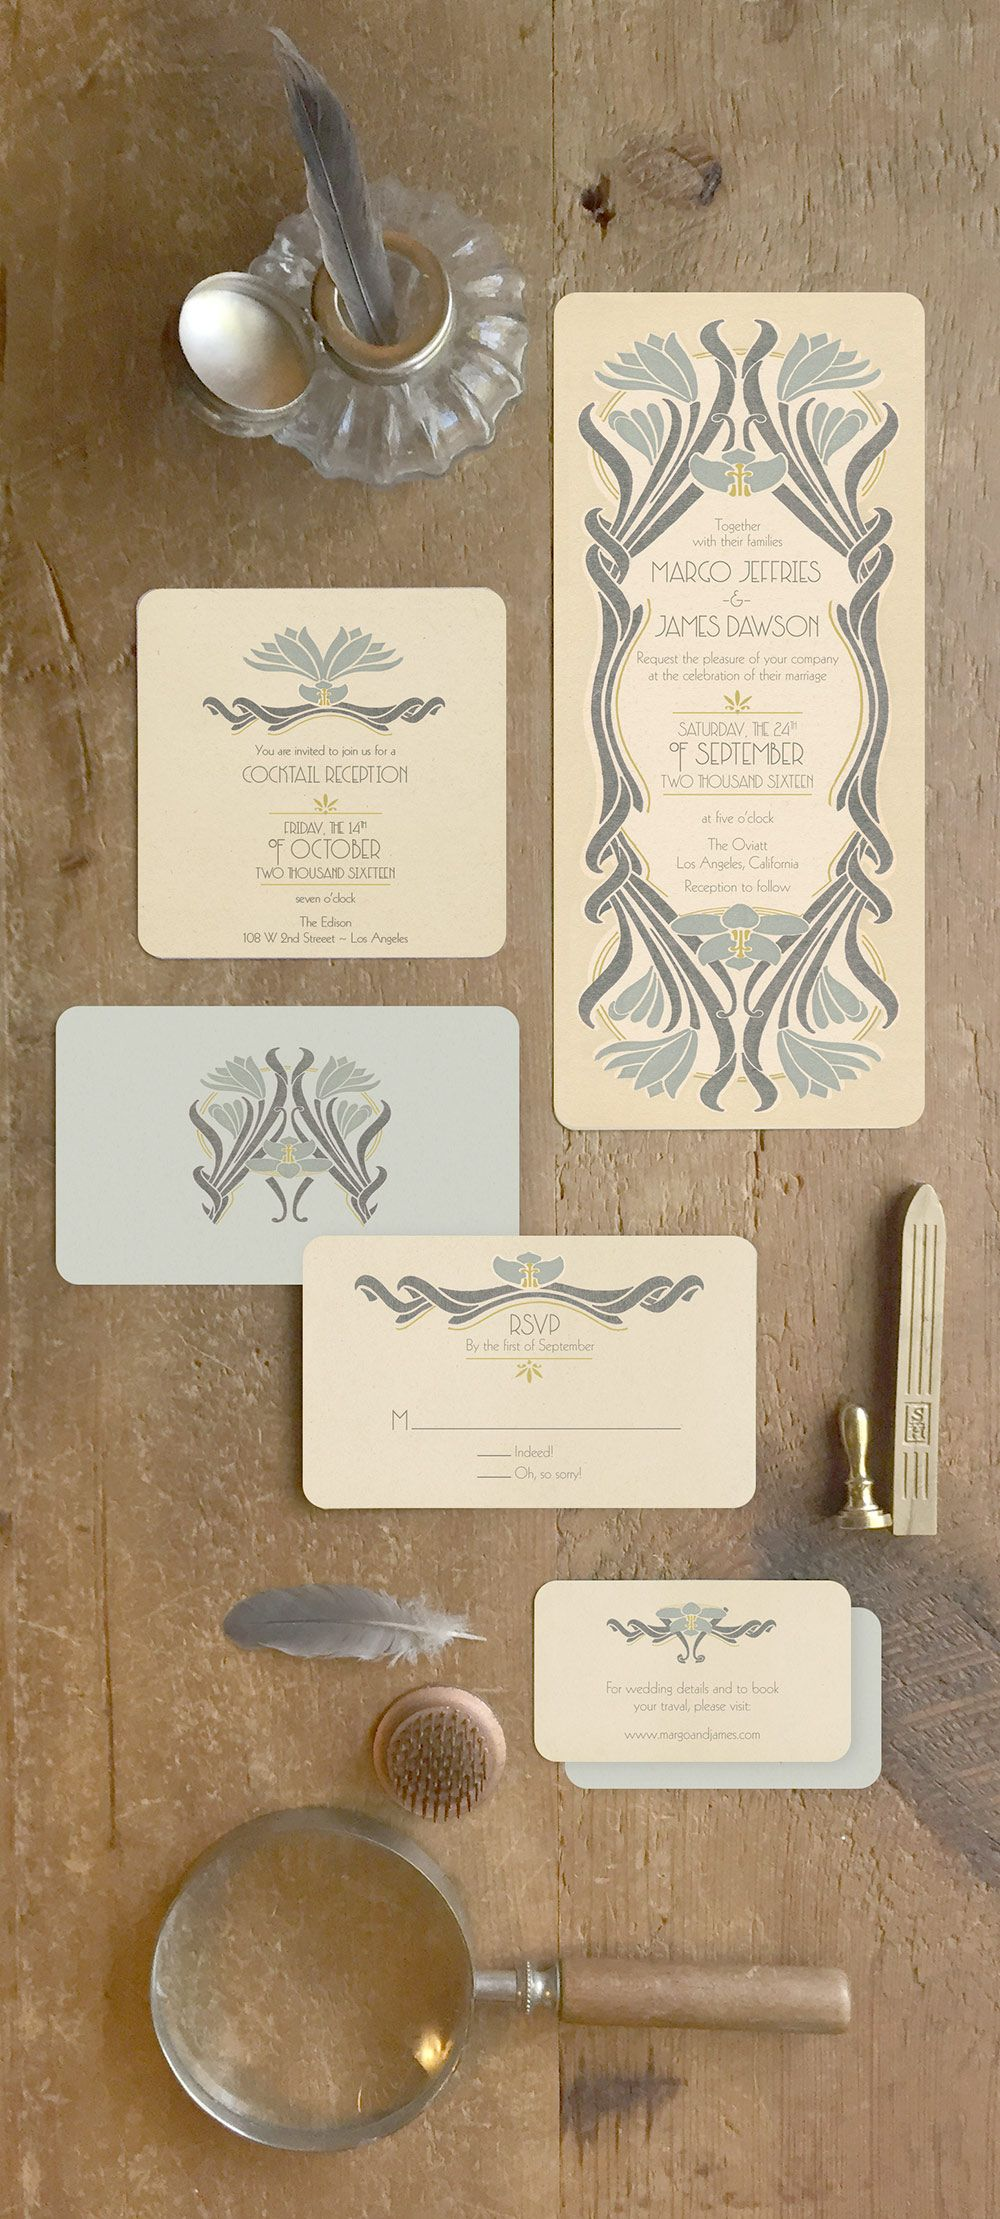 INTAGE WEDDING INVITATIONS What a great way